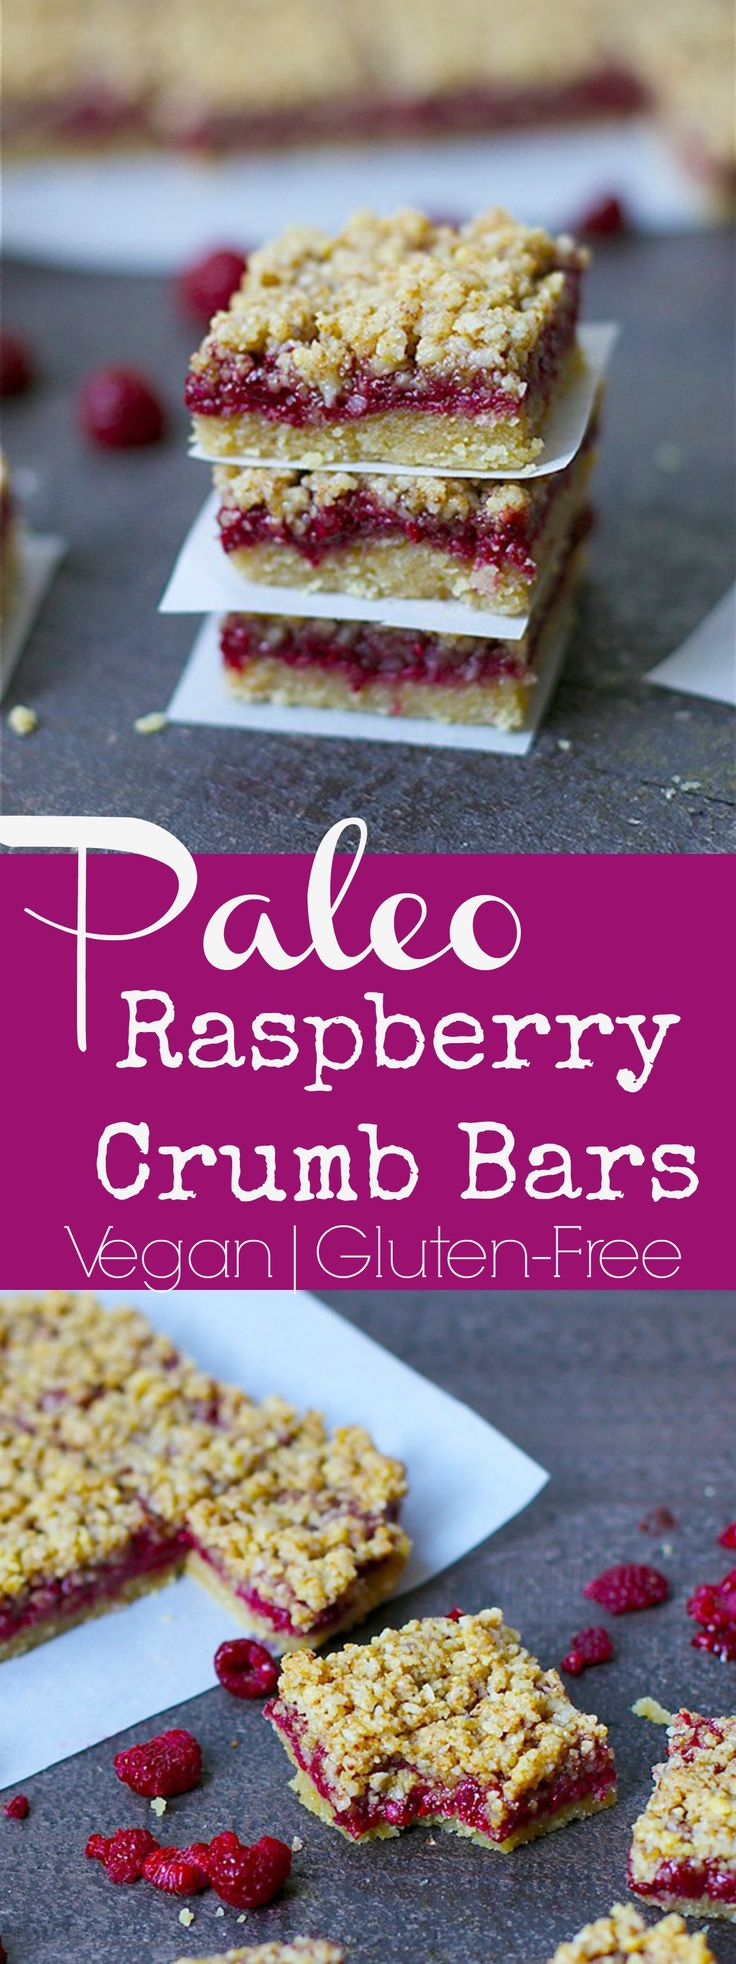 Three perfect layers of deliciousness that make for a yummy breakfast, snack or dessert! You'll love these Raspberry Crumb Bars that are full of nutrients and flavor. Paleo, Grain-Free, and Vegan, but no one will ever know!